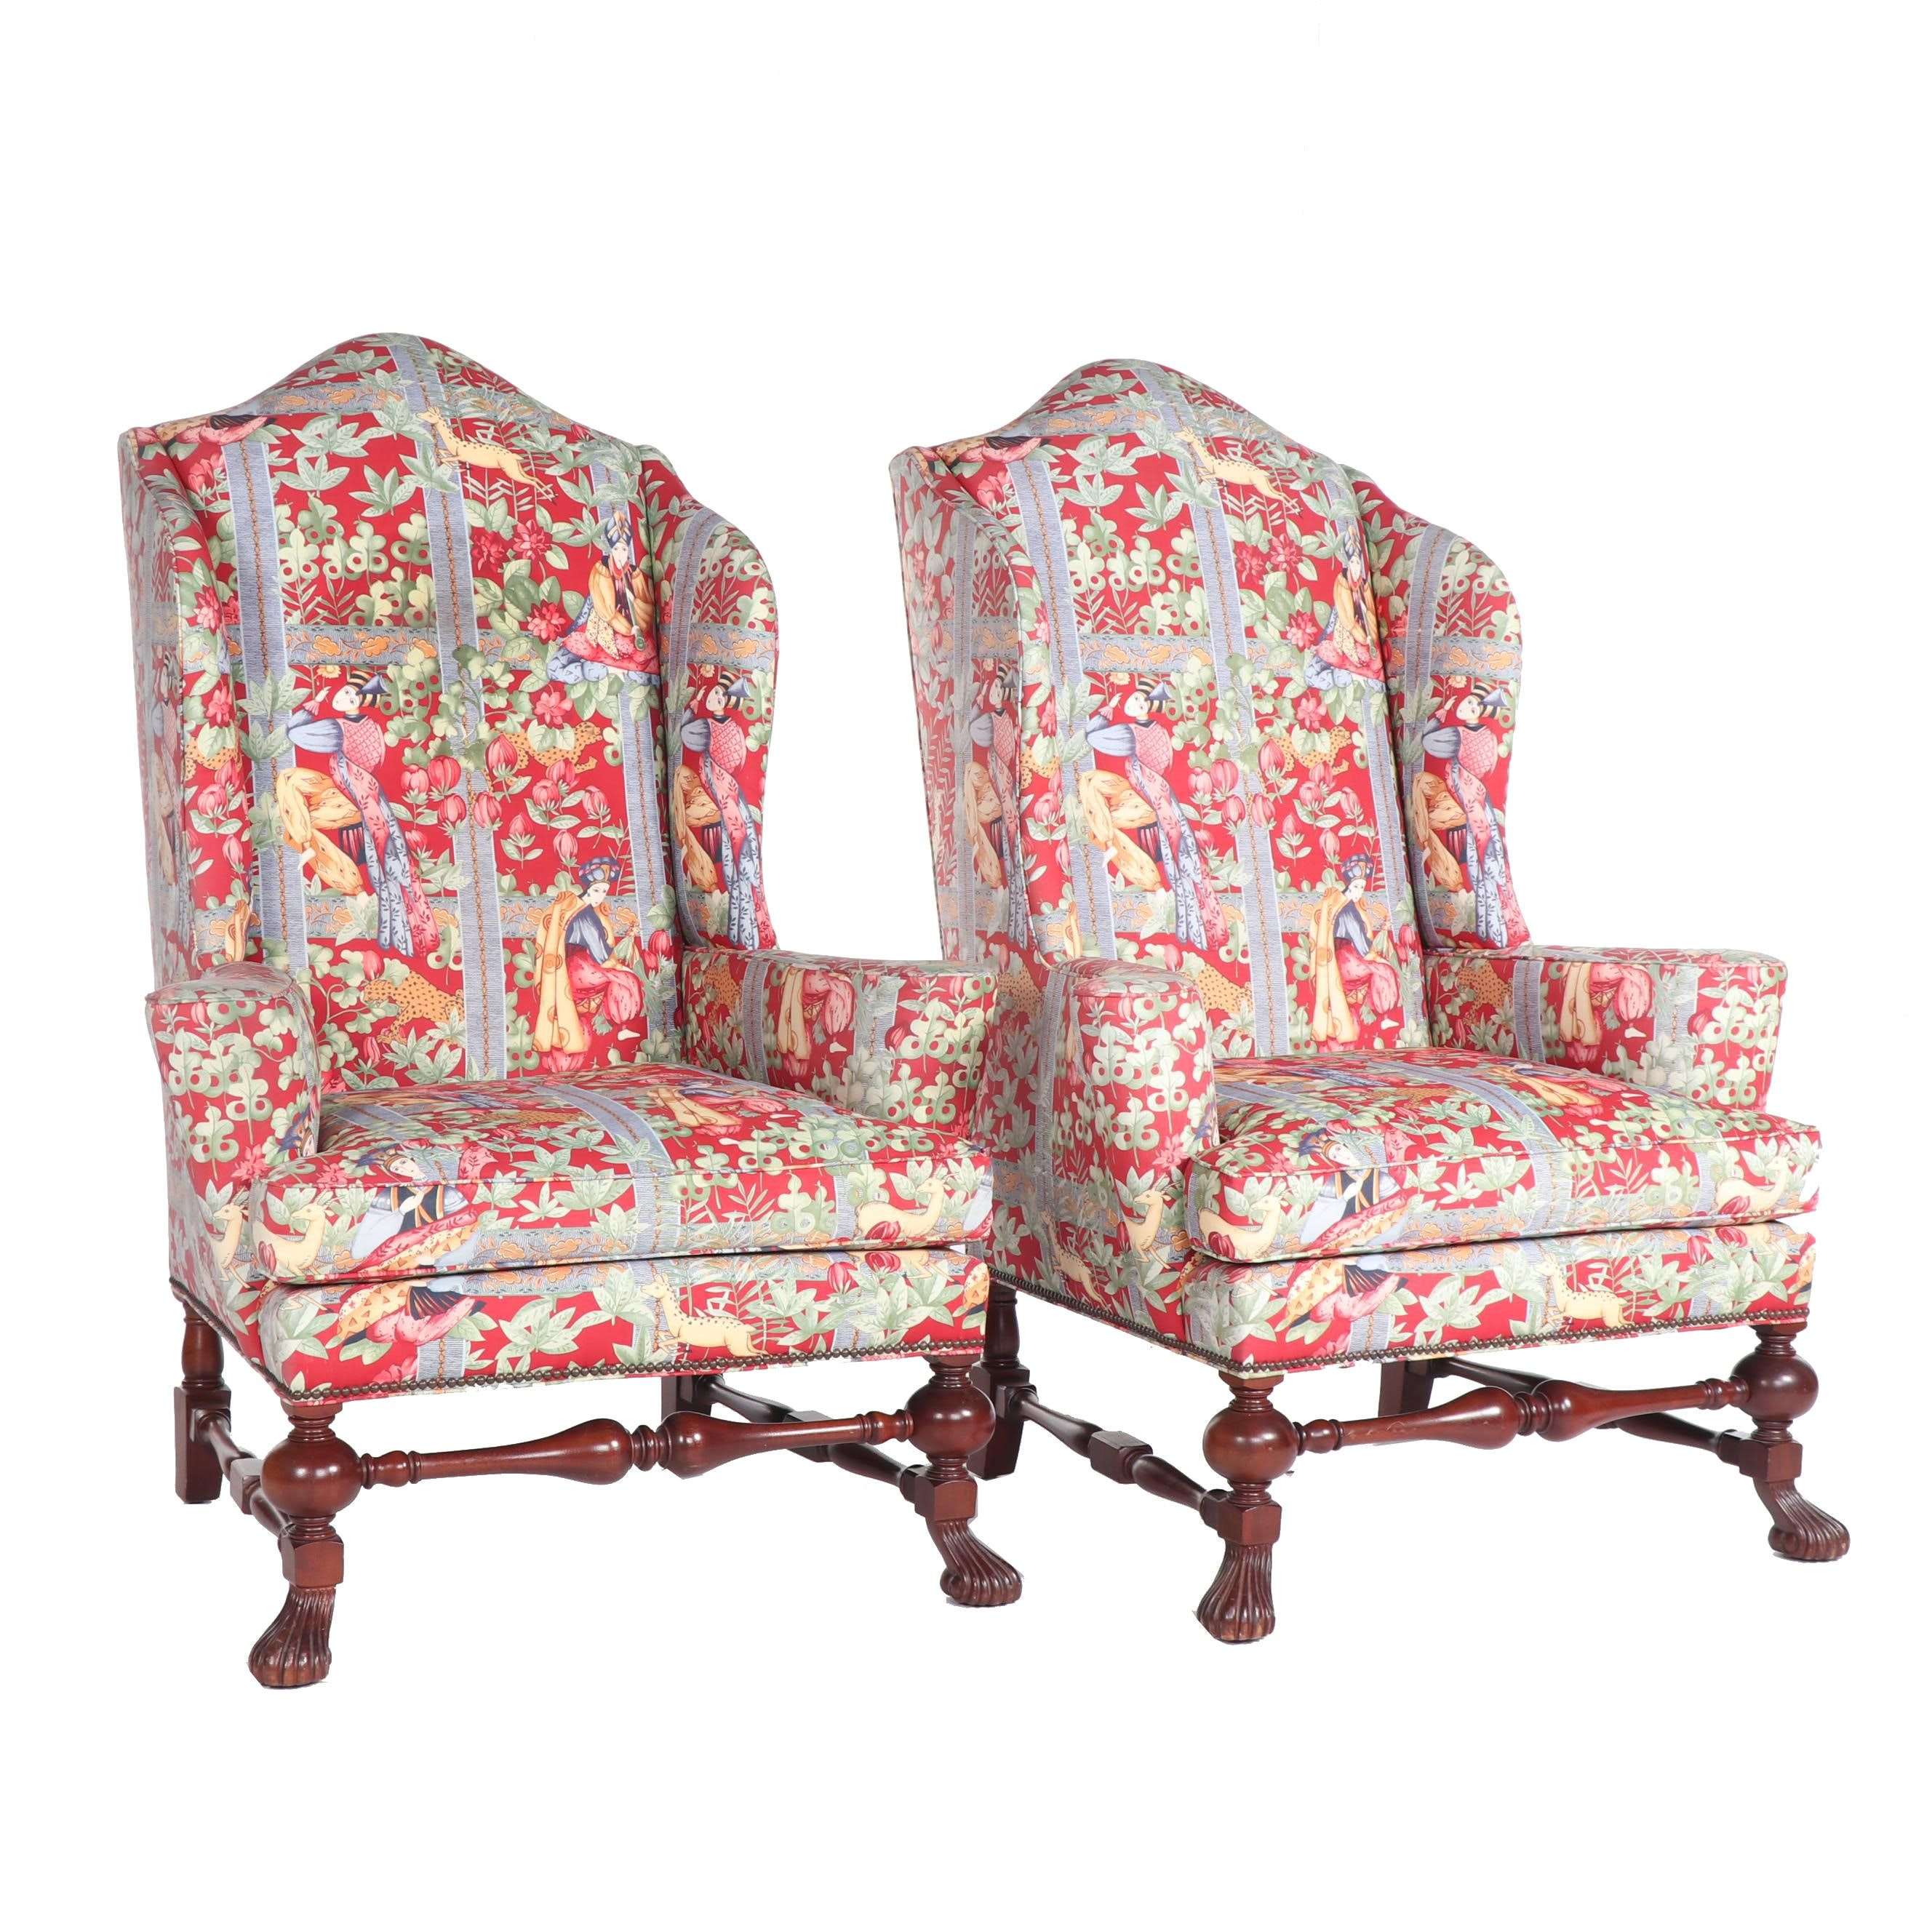 Baker Upholstered Wingback Armchairs, 21st Century